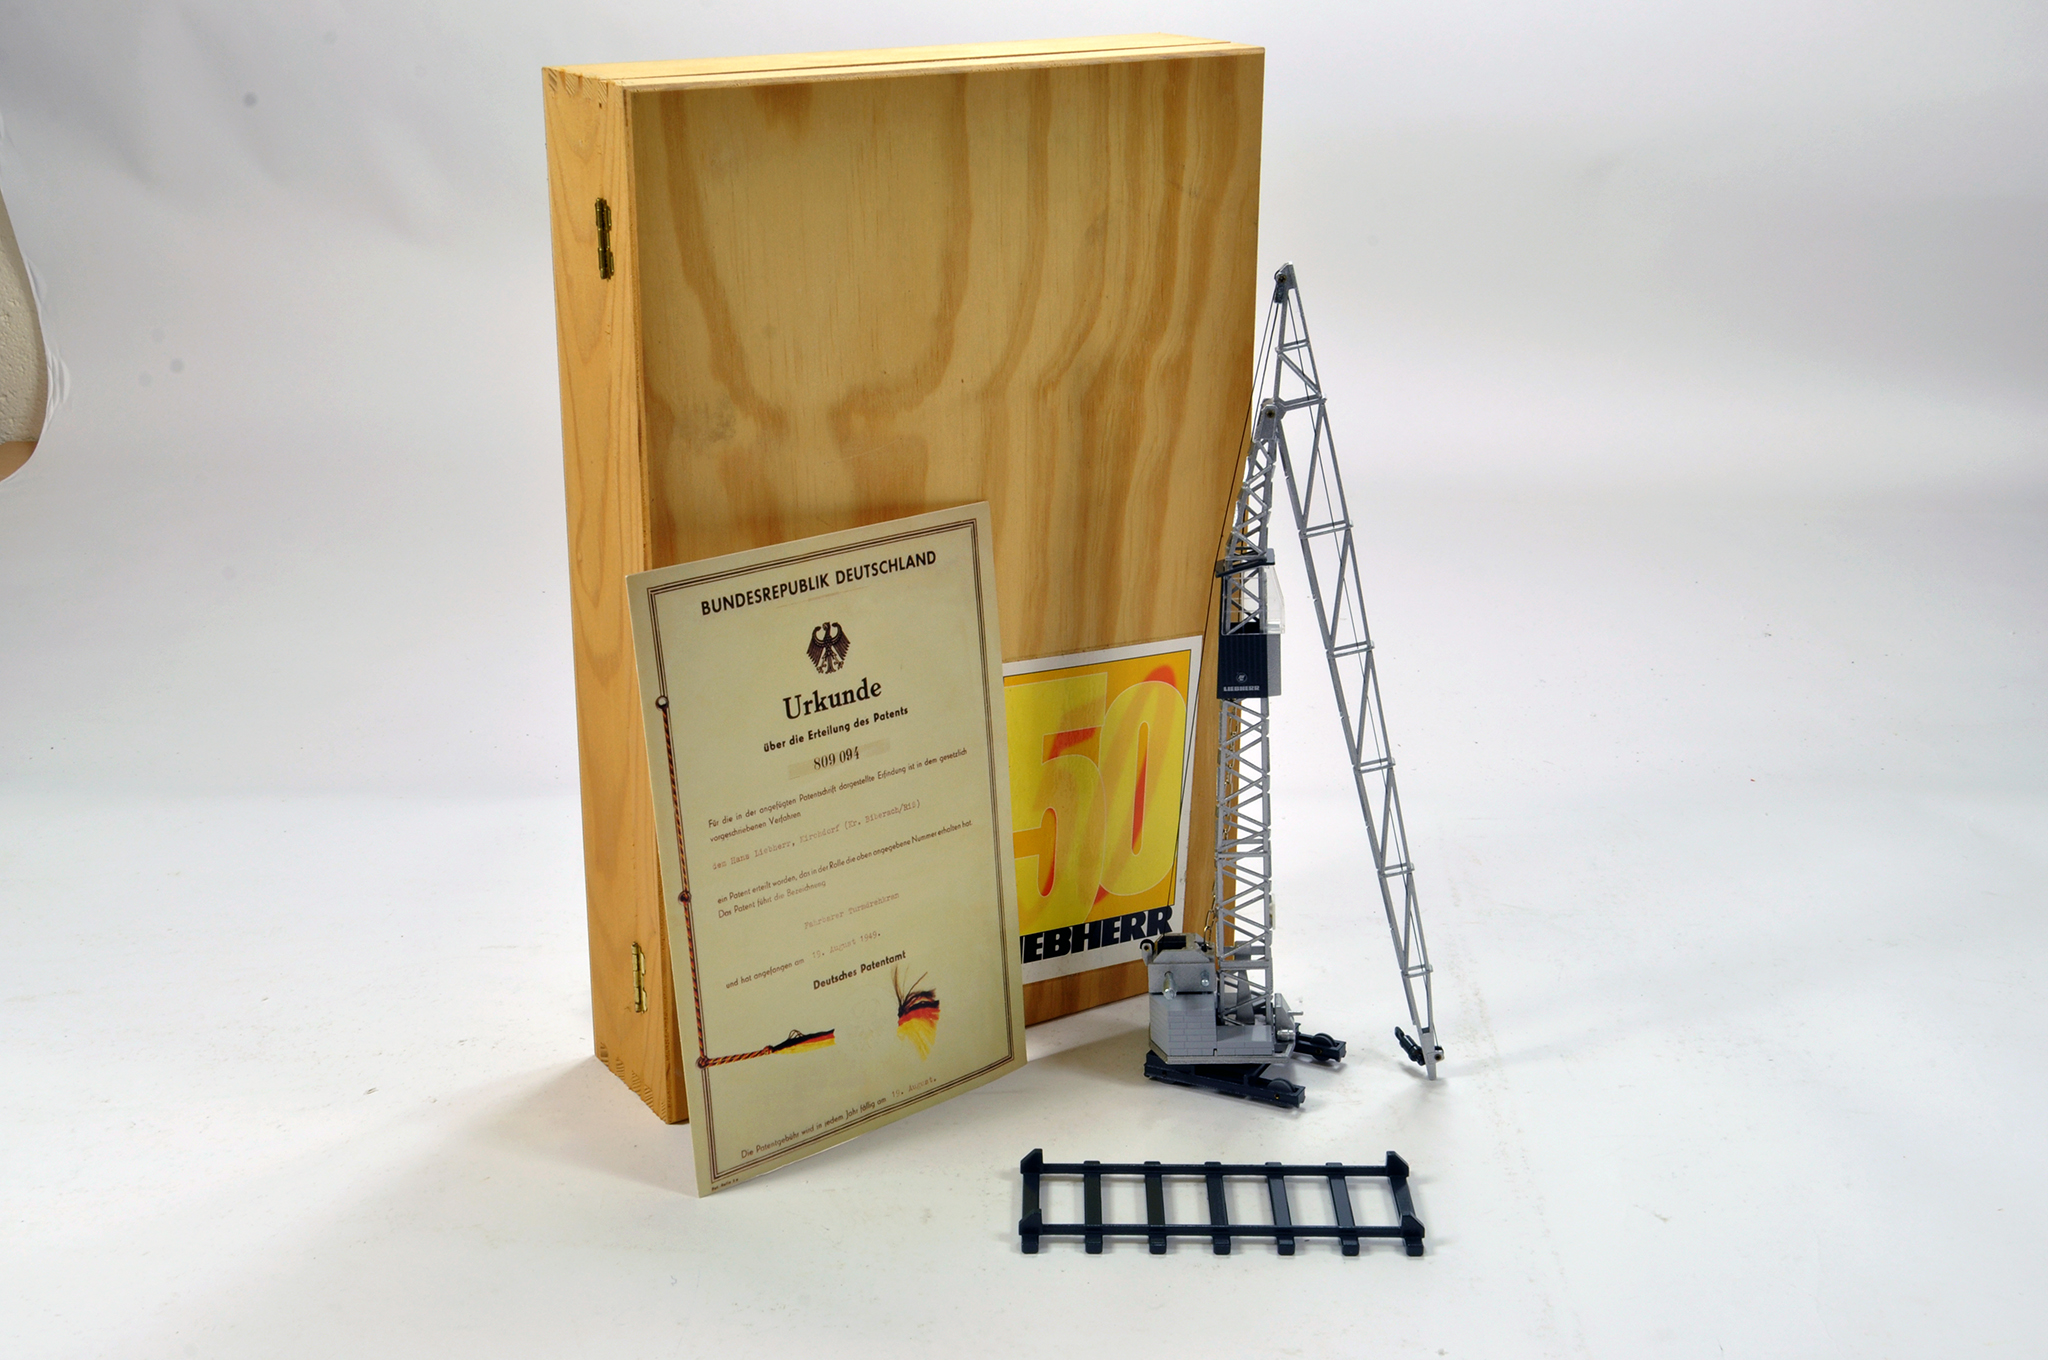 Lot 340 - Conrad 1/50 construction issue comprising Liebherr 50 year special issue TK8 Tower Crane. E to NM.